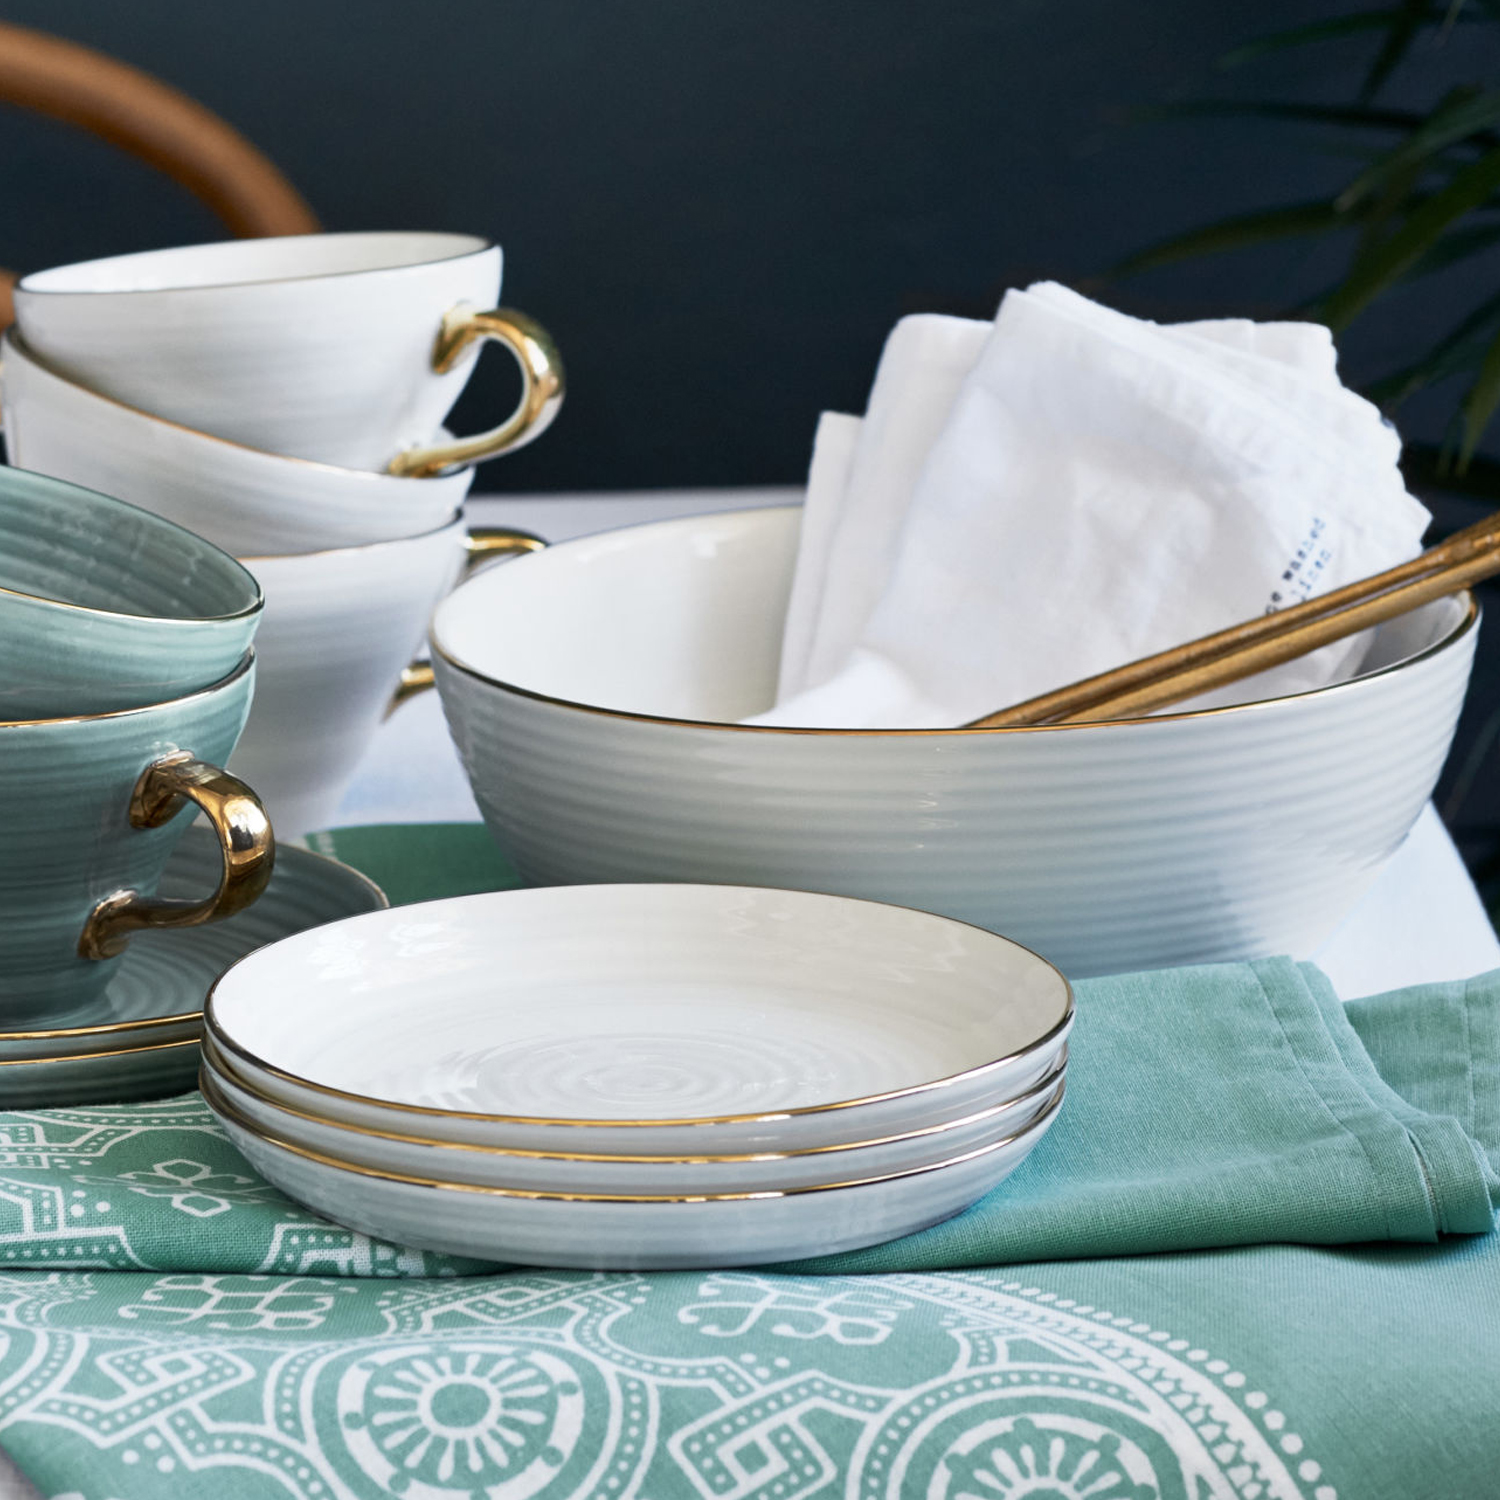 H&M home diningware